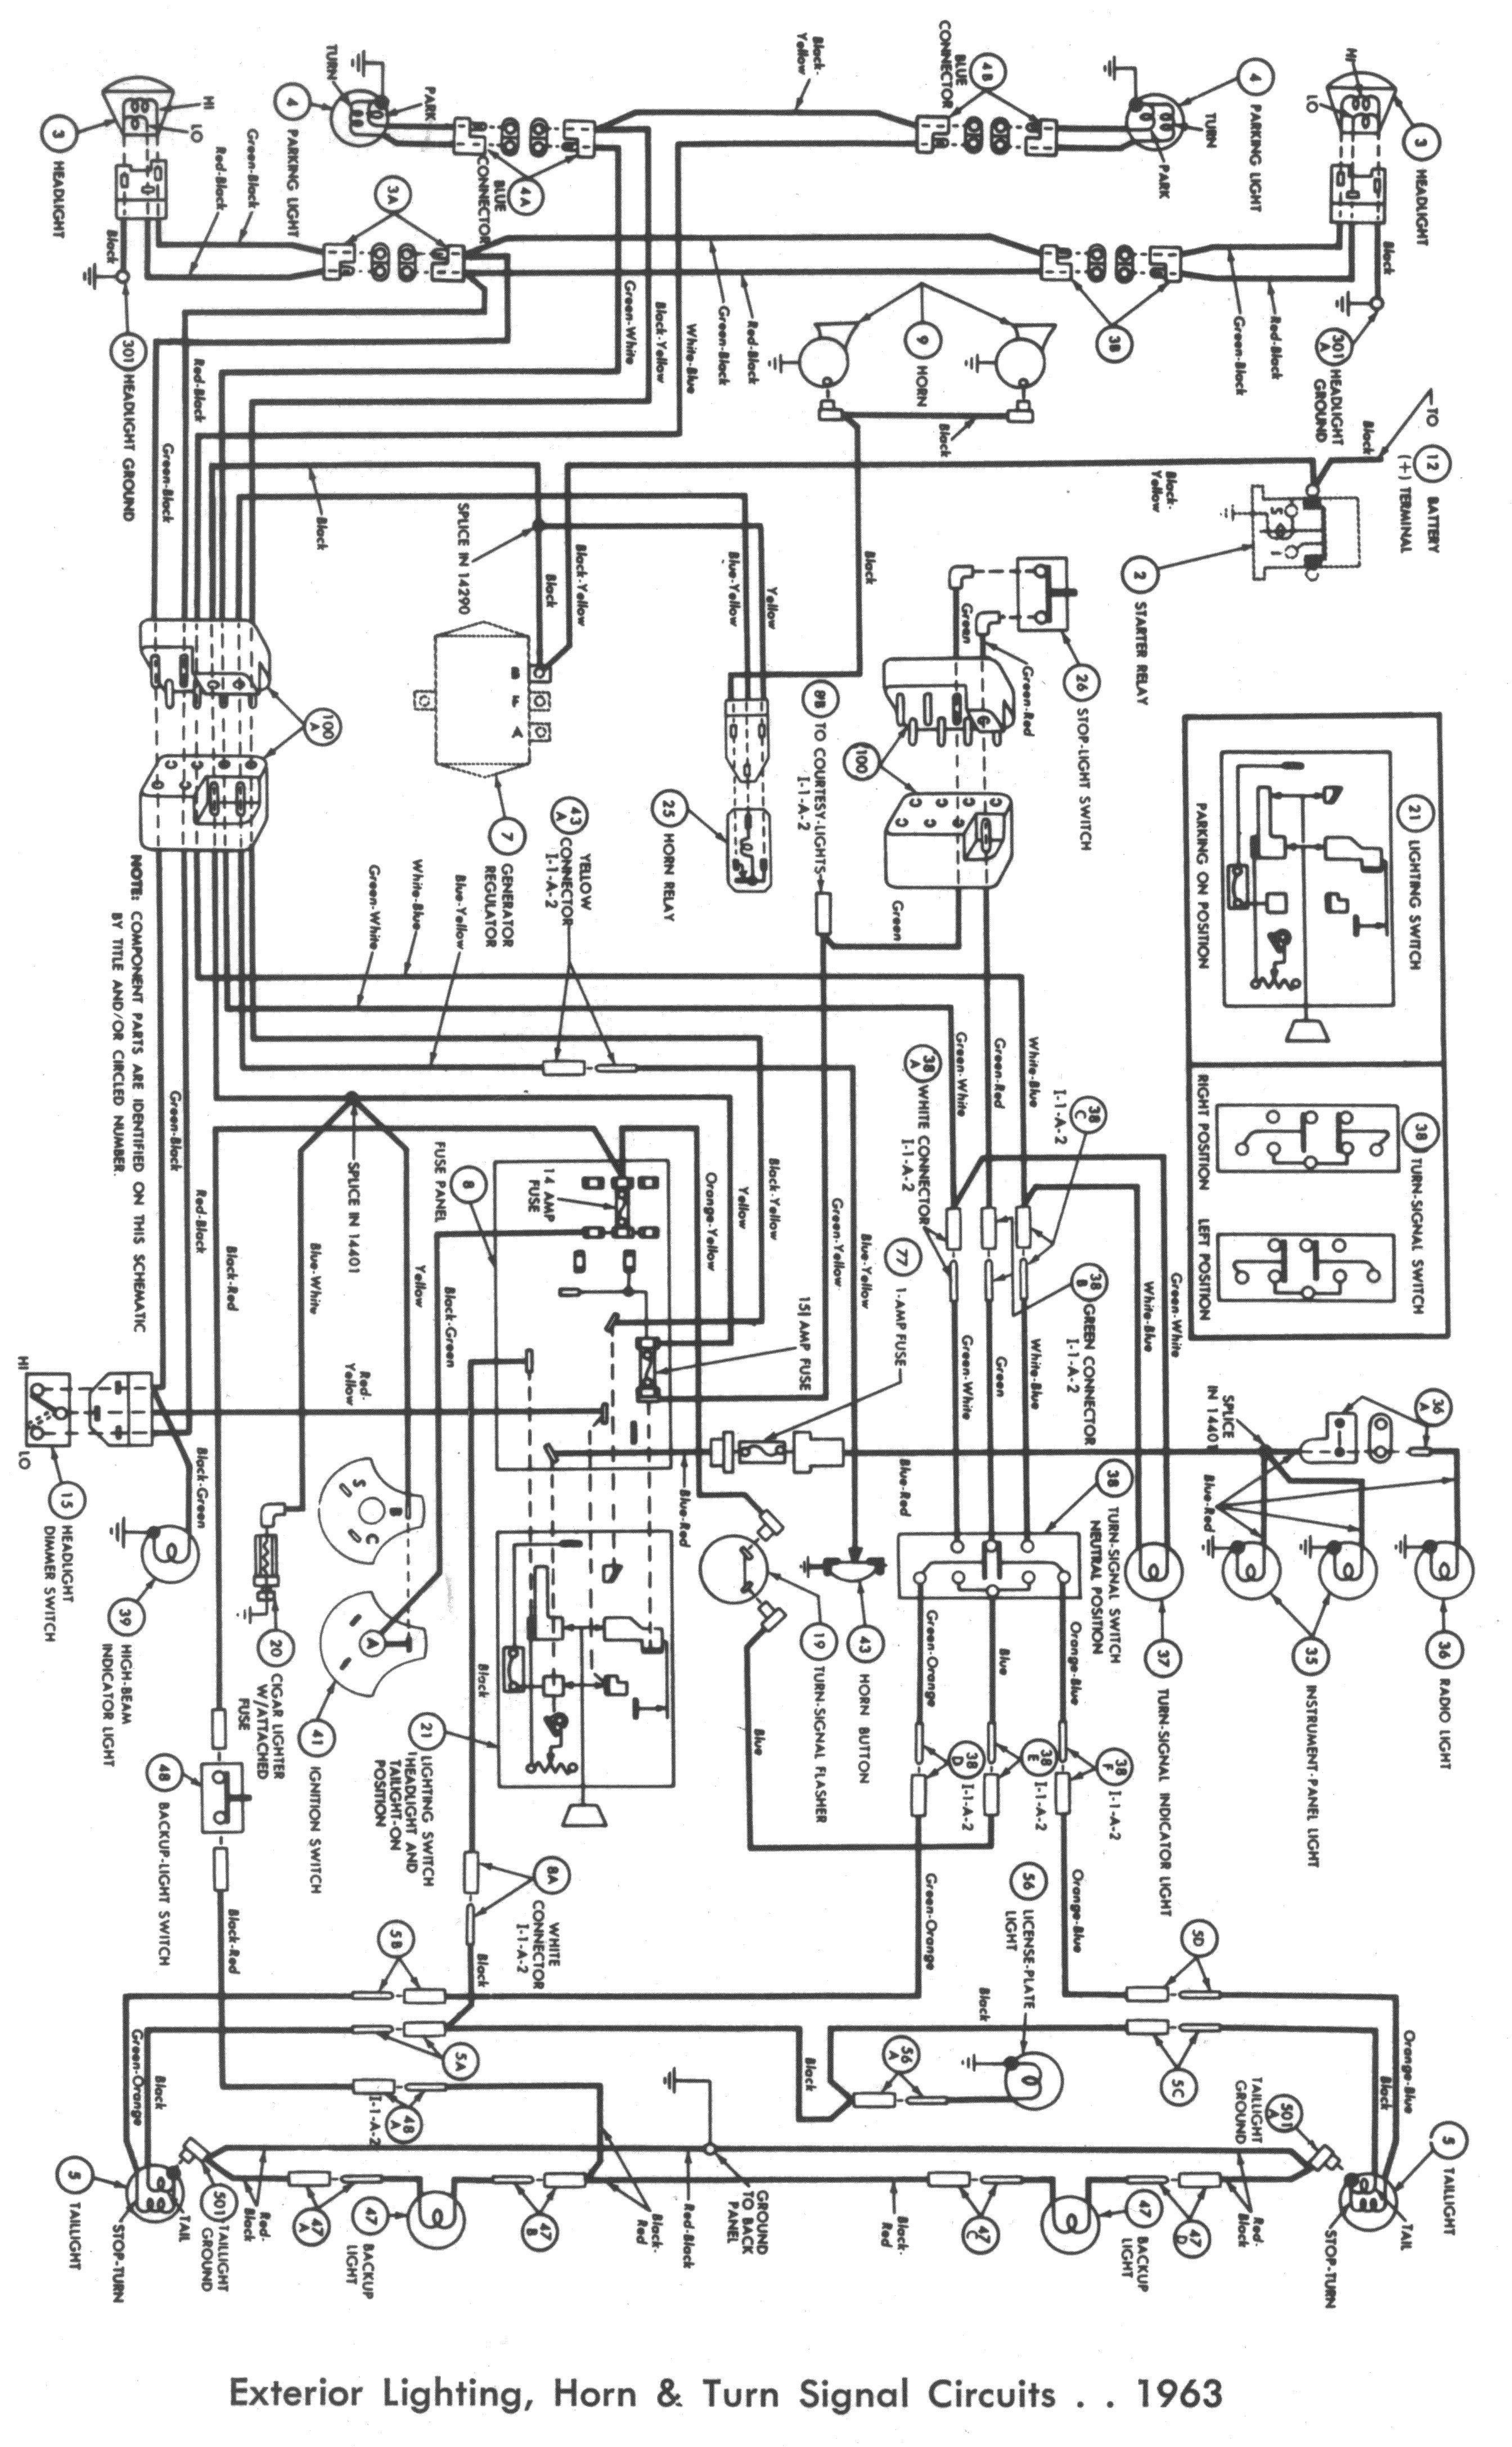 1963 ford fairlane wiring diagram besides 1963 ford thunderbird wiring